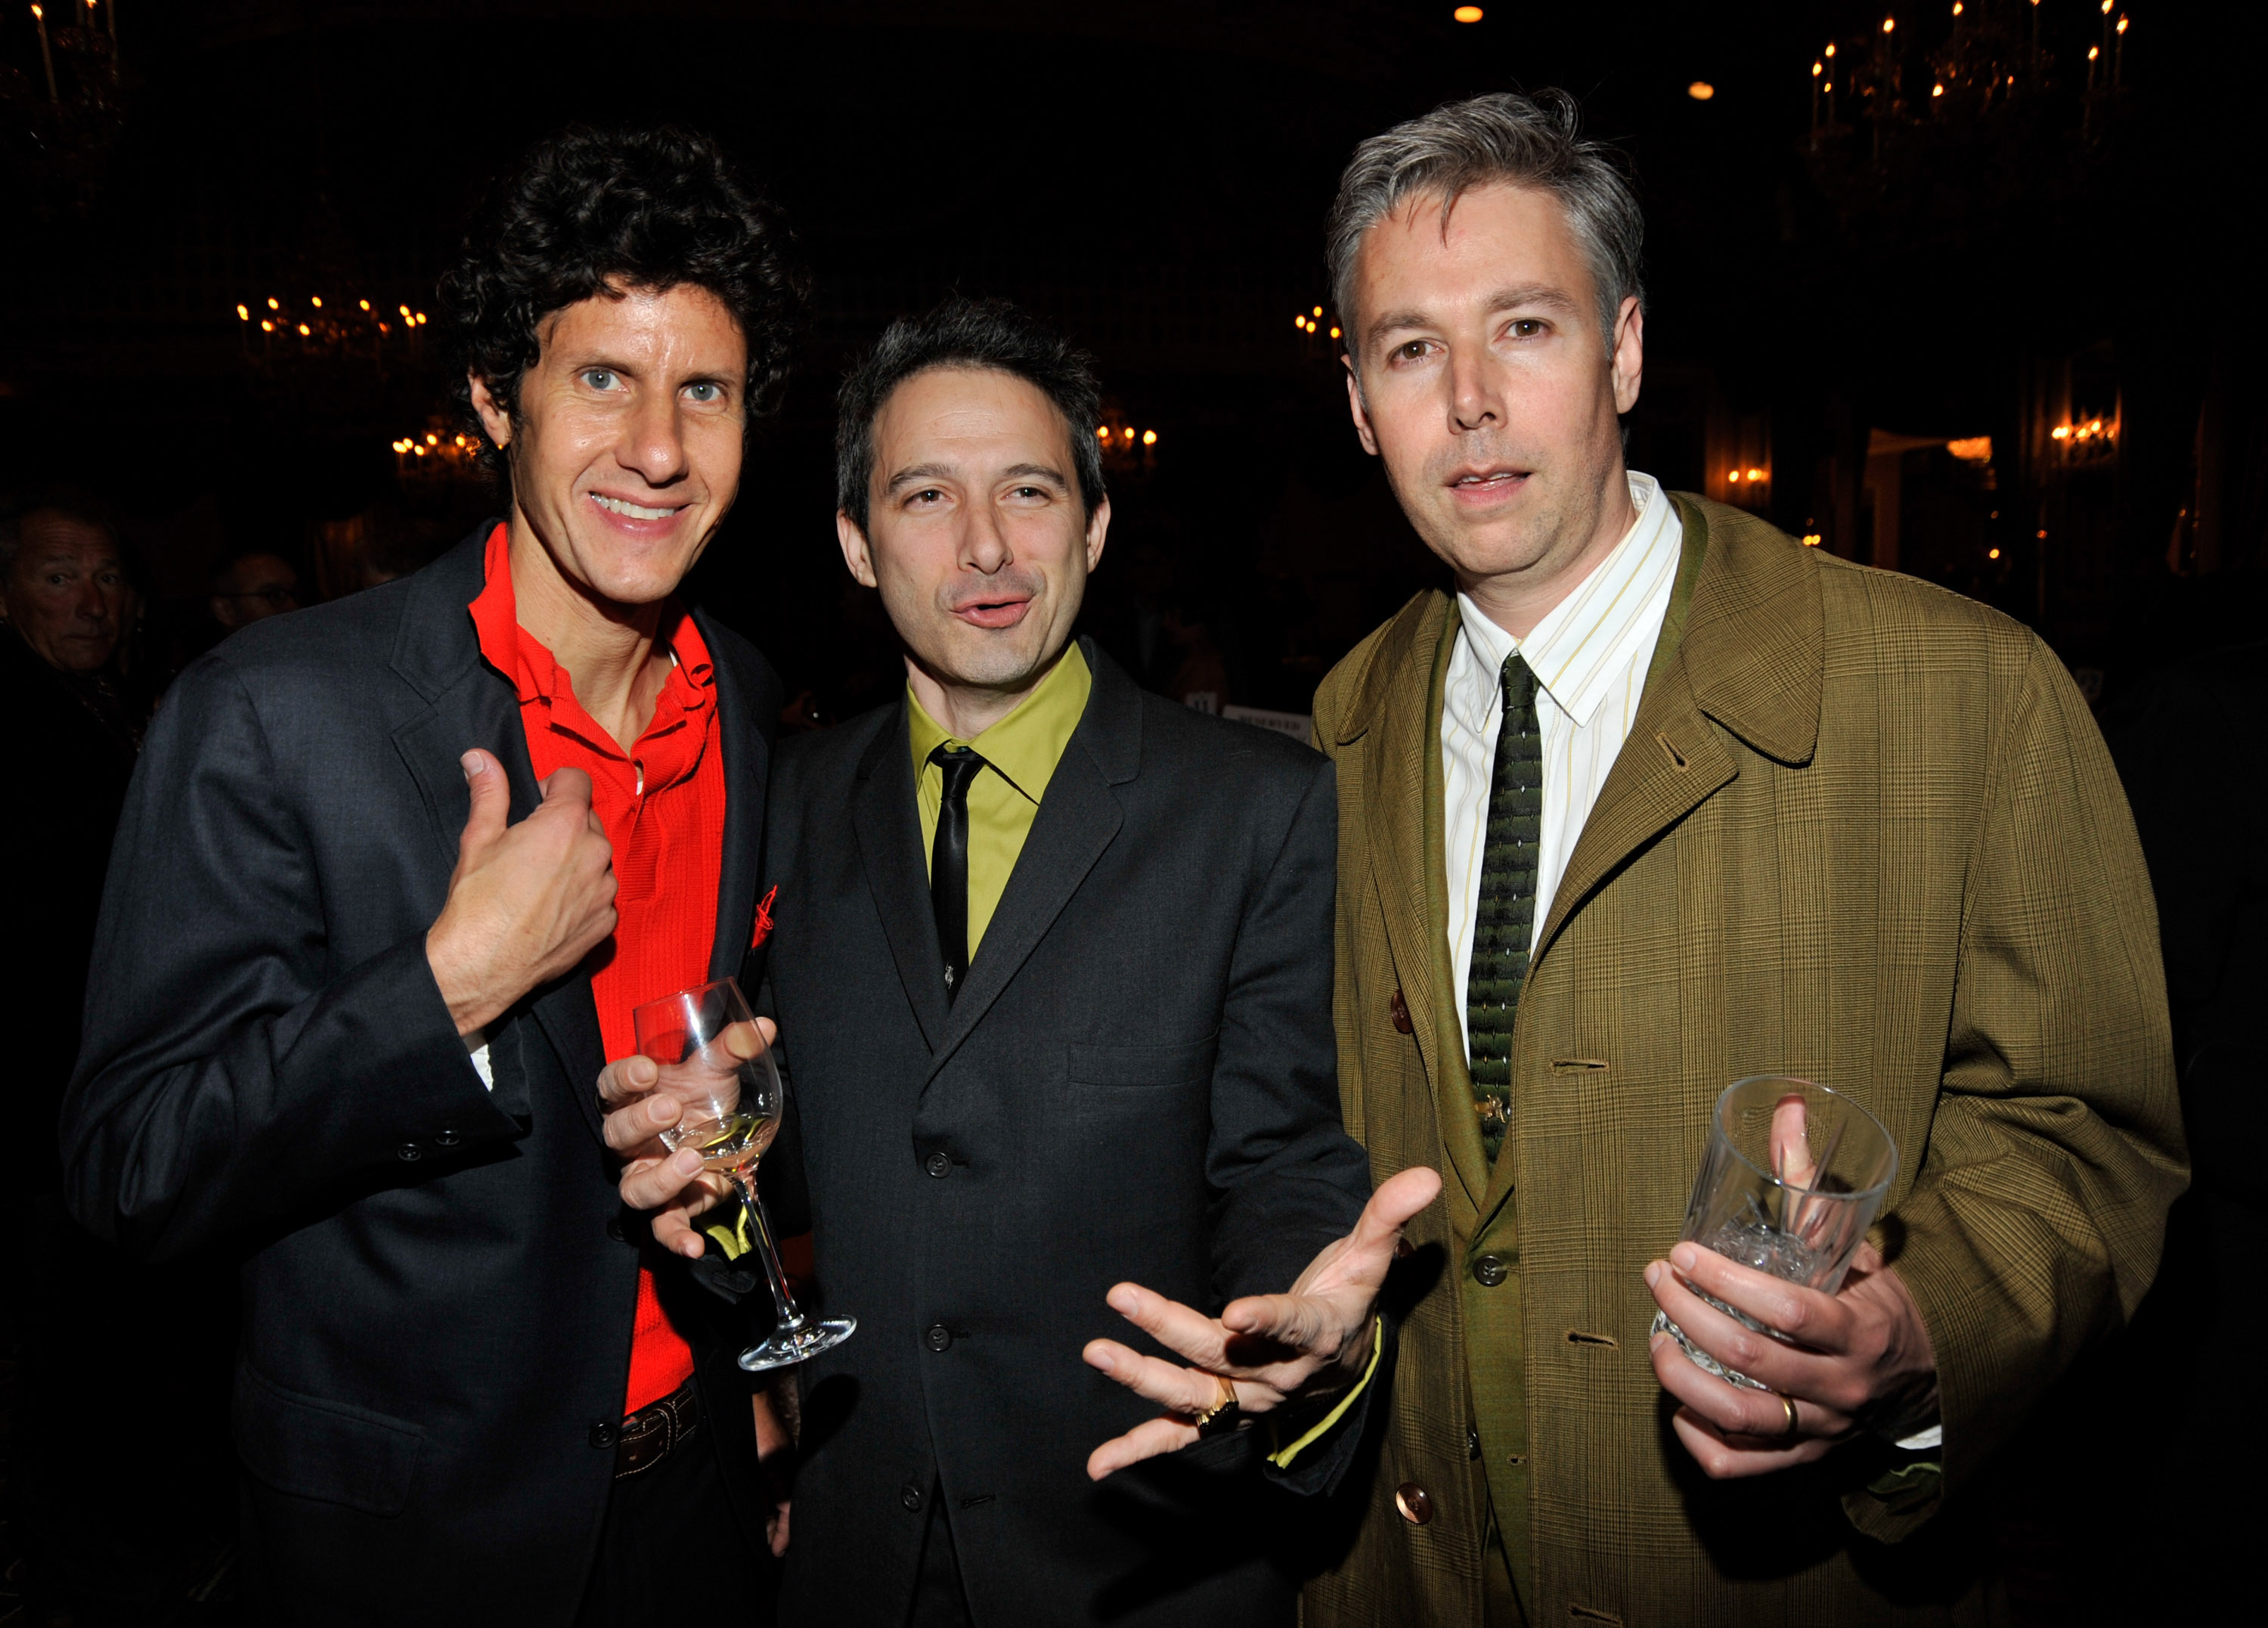 Michael 'Mike D' Diamond, Adam 'Ad-Rock' Horovitz and Adam 'MCA' Yauch of The Beastie Boys attends the after party for HBO films presents  Grey Gardens  New York premiere at the Pierre Hotel on April 14, 2009 in New York City.